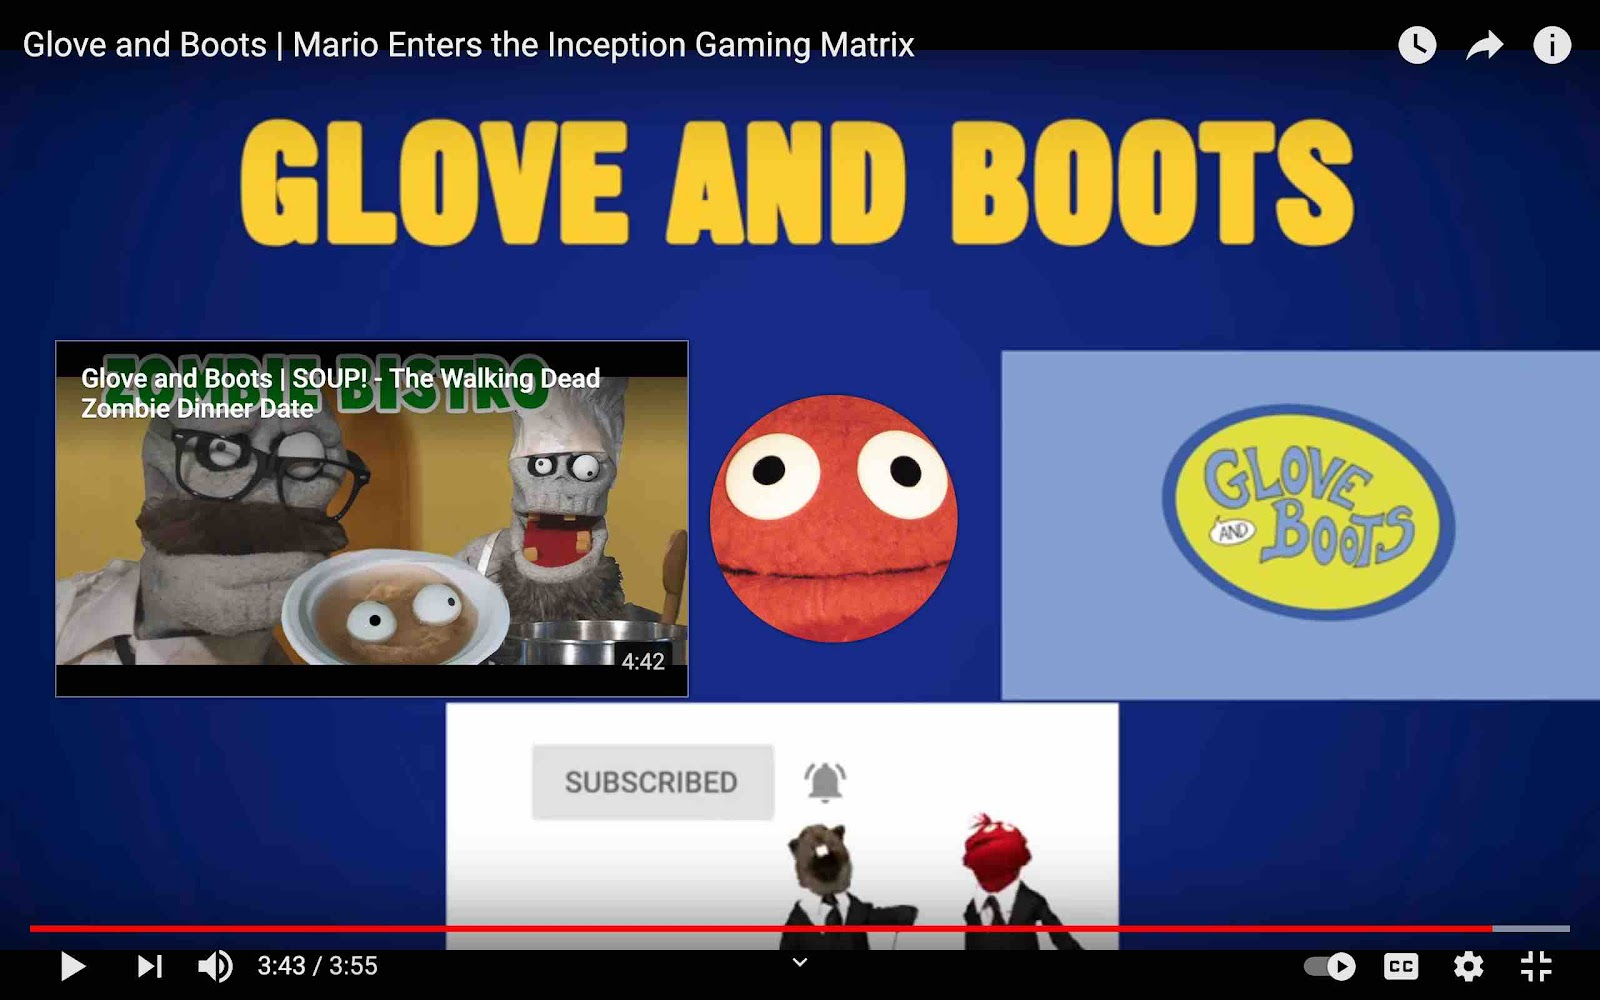 Subscribe to Glove and Boots